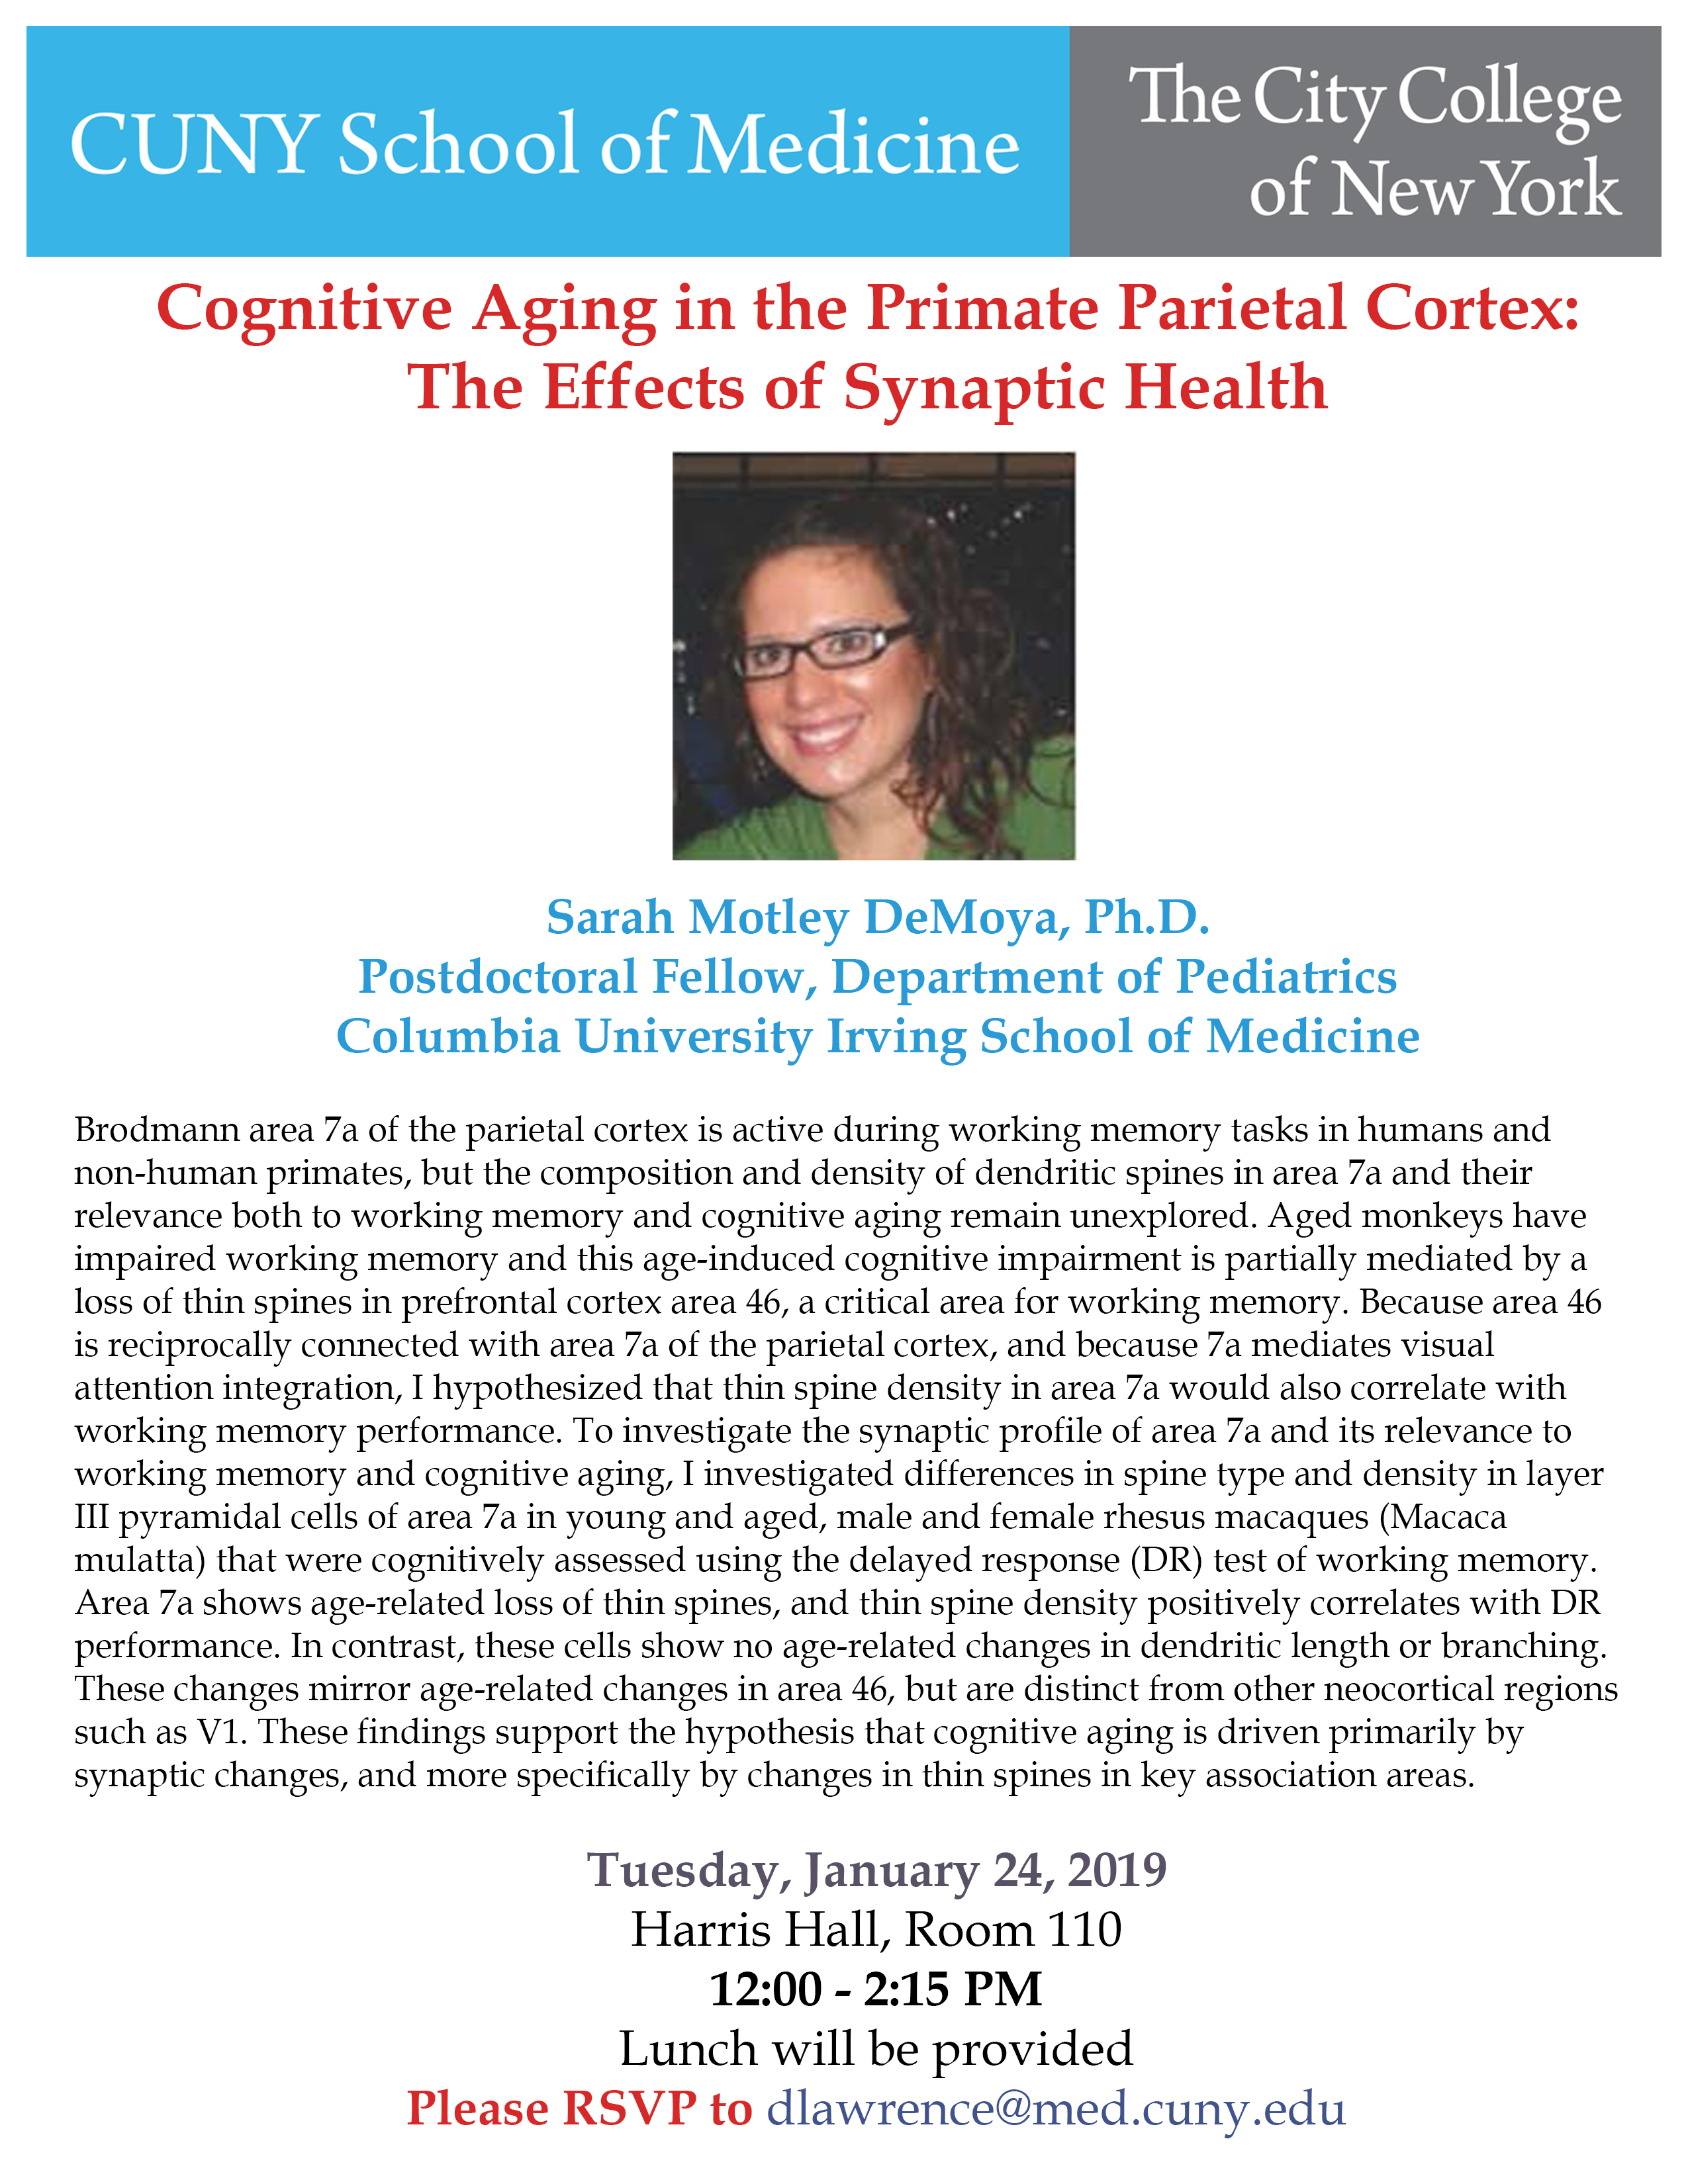 Motley Seminar - Cognitive Aging in the Primate Parietal Cortex: The effects of Synaptic Health.